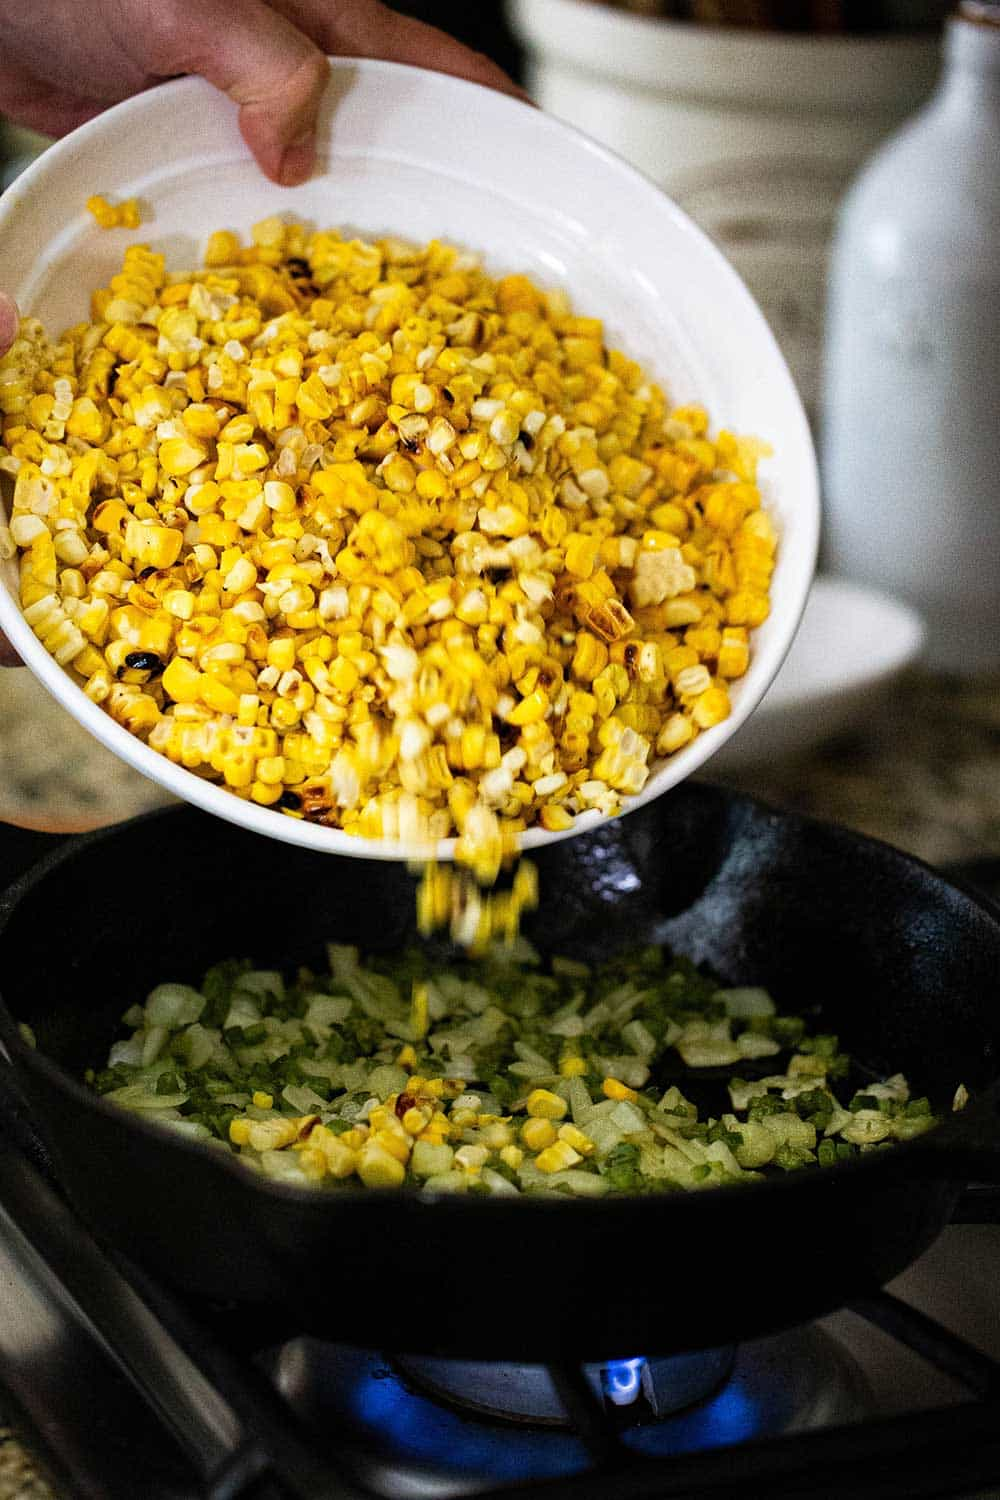 A person dumping grilled kernels of corn into a cast-iron skillet with sautéed onion and peppers in it.